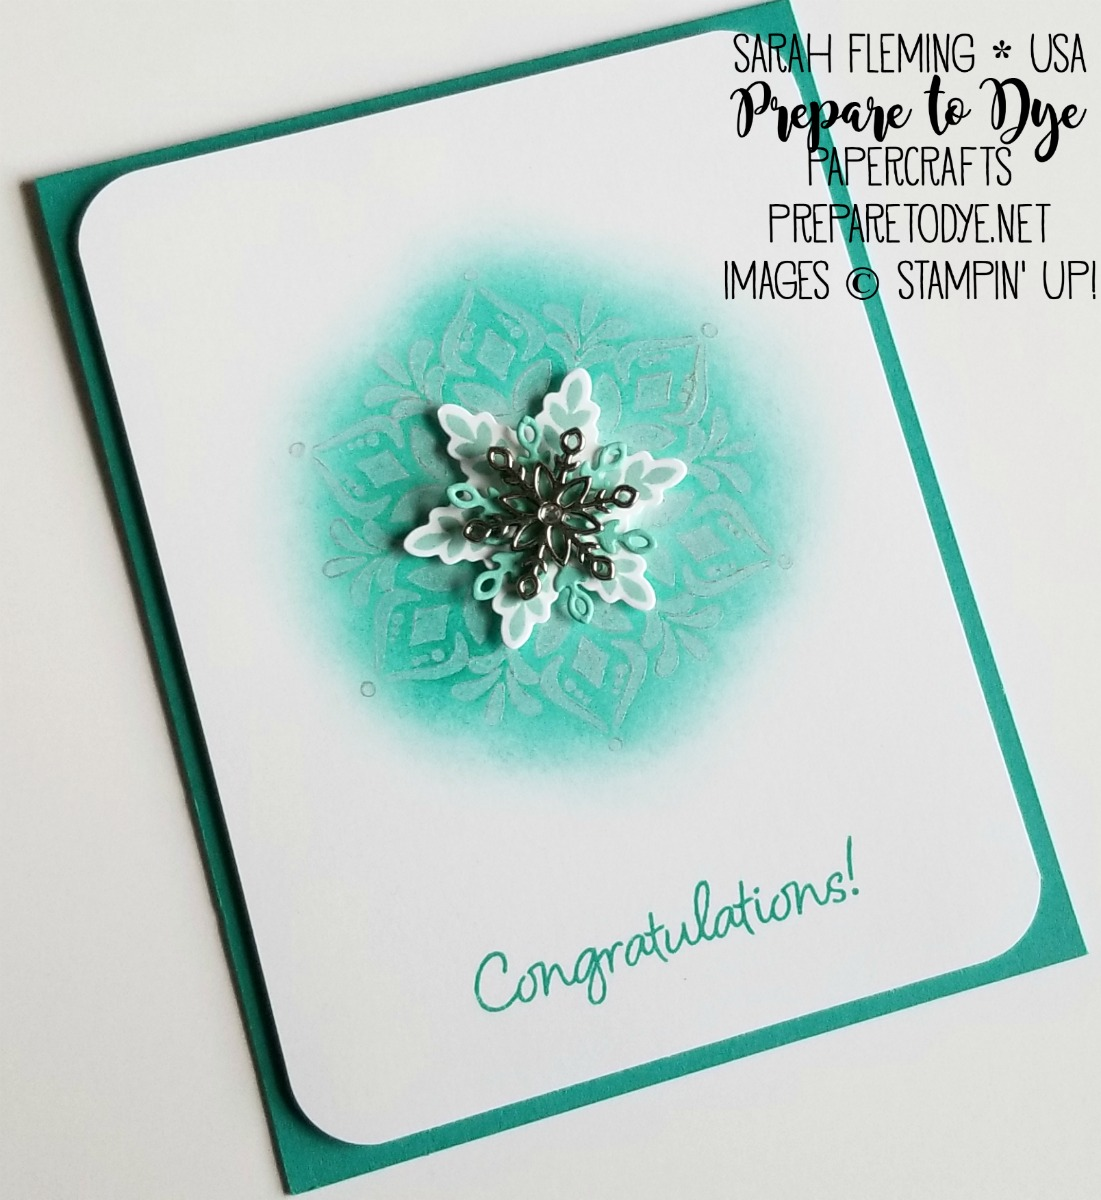 Stampin' Up! handmade congratulations card using Happiness Surrounds stamp set with Shimmer Paint Resist technique, Snowfall Thinlits -- last two days for the Snowflake Showcase limited-time products - Sarah Fleming - Prepare to Dye Papercrafts